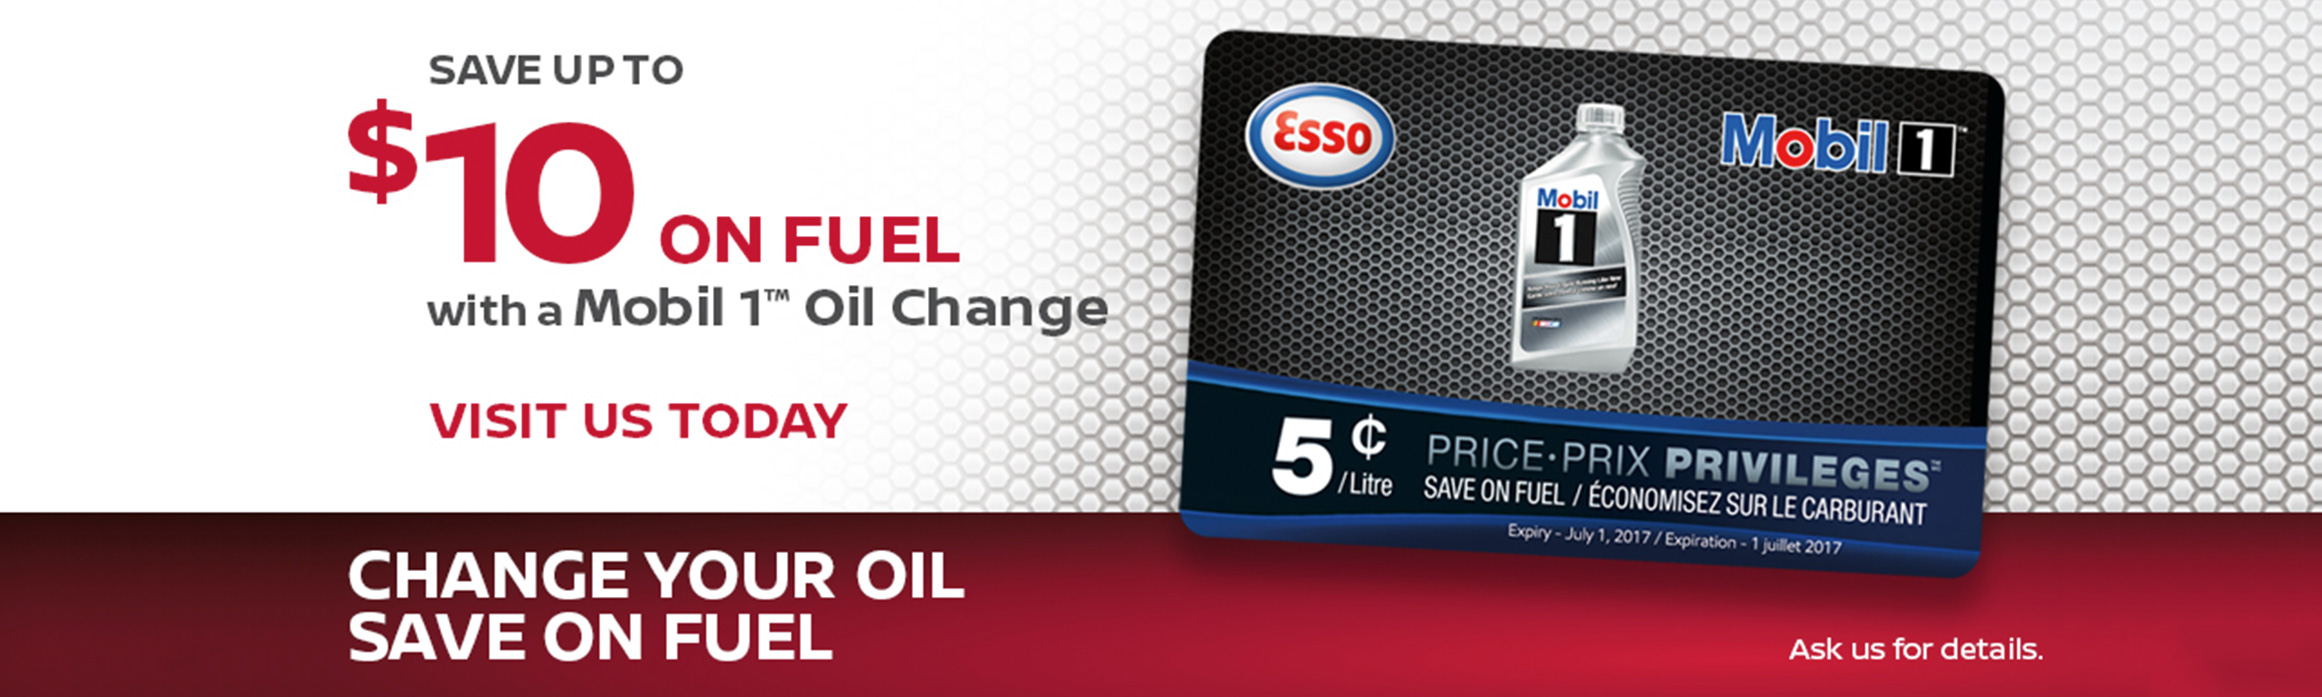 Save up to $10 on Fuel